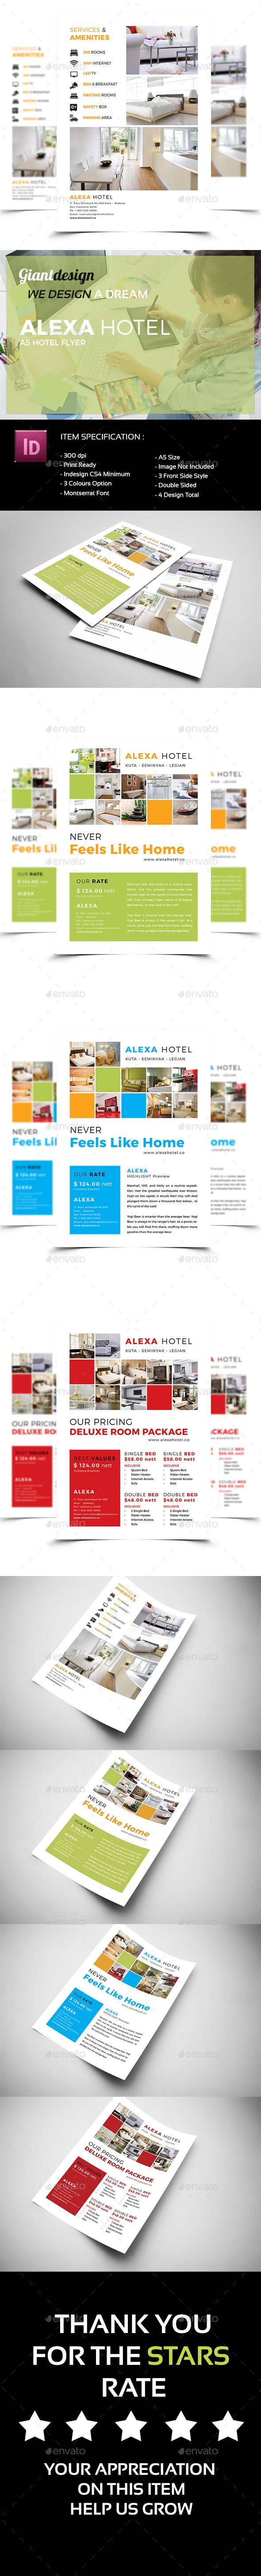 Alexa Hotel Flyer | Flyer template, Template and Indesign templates